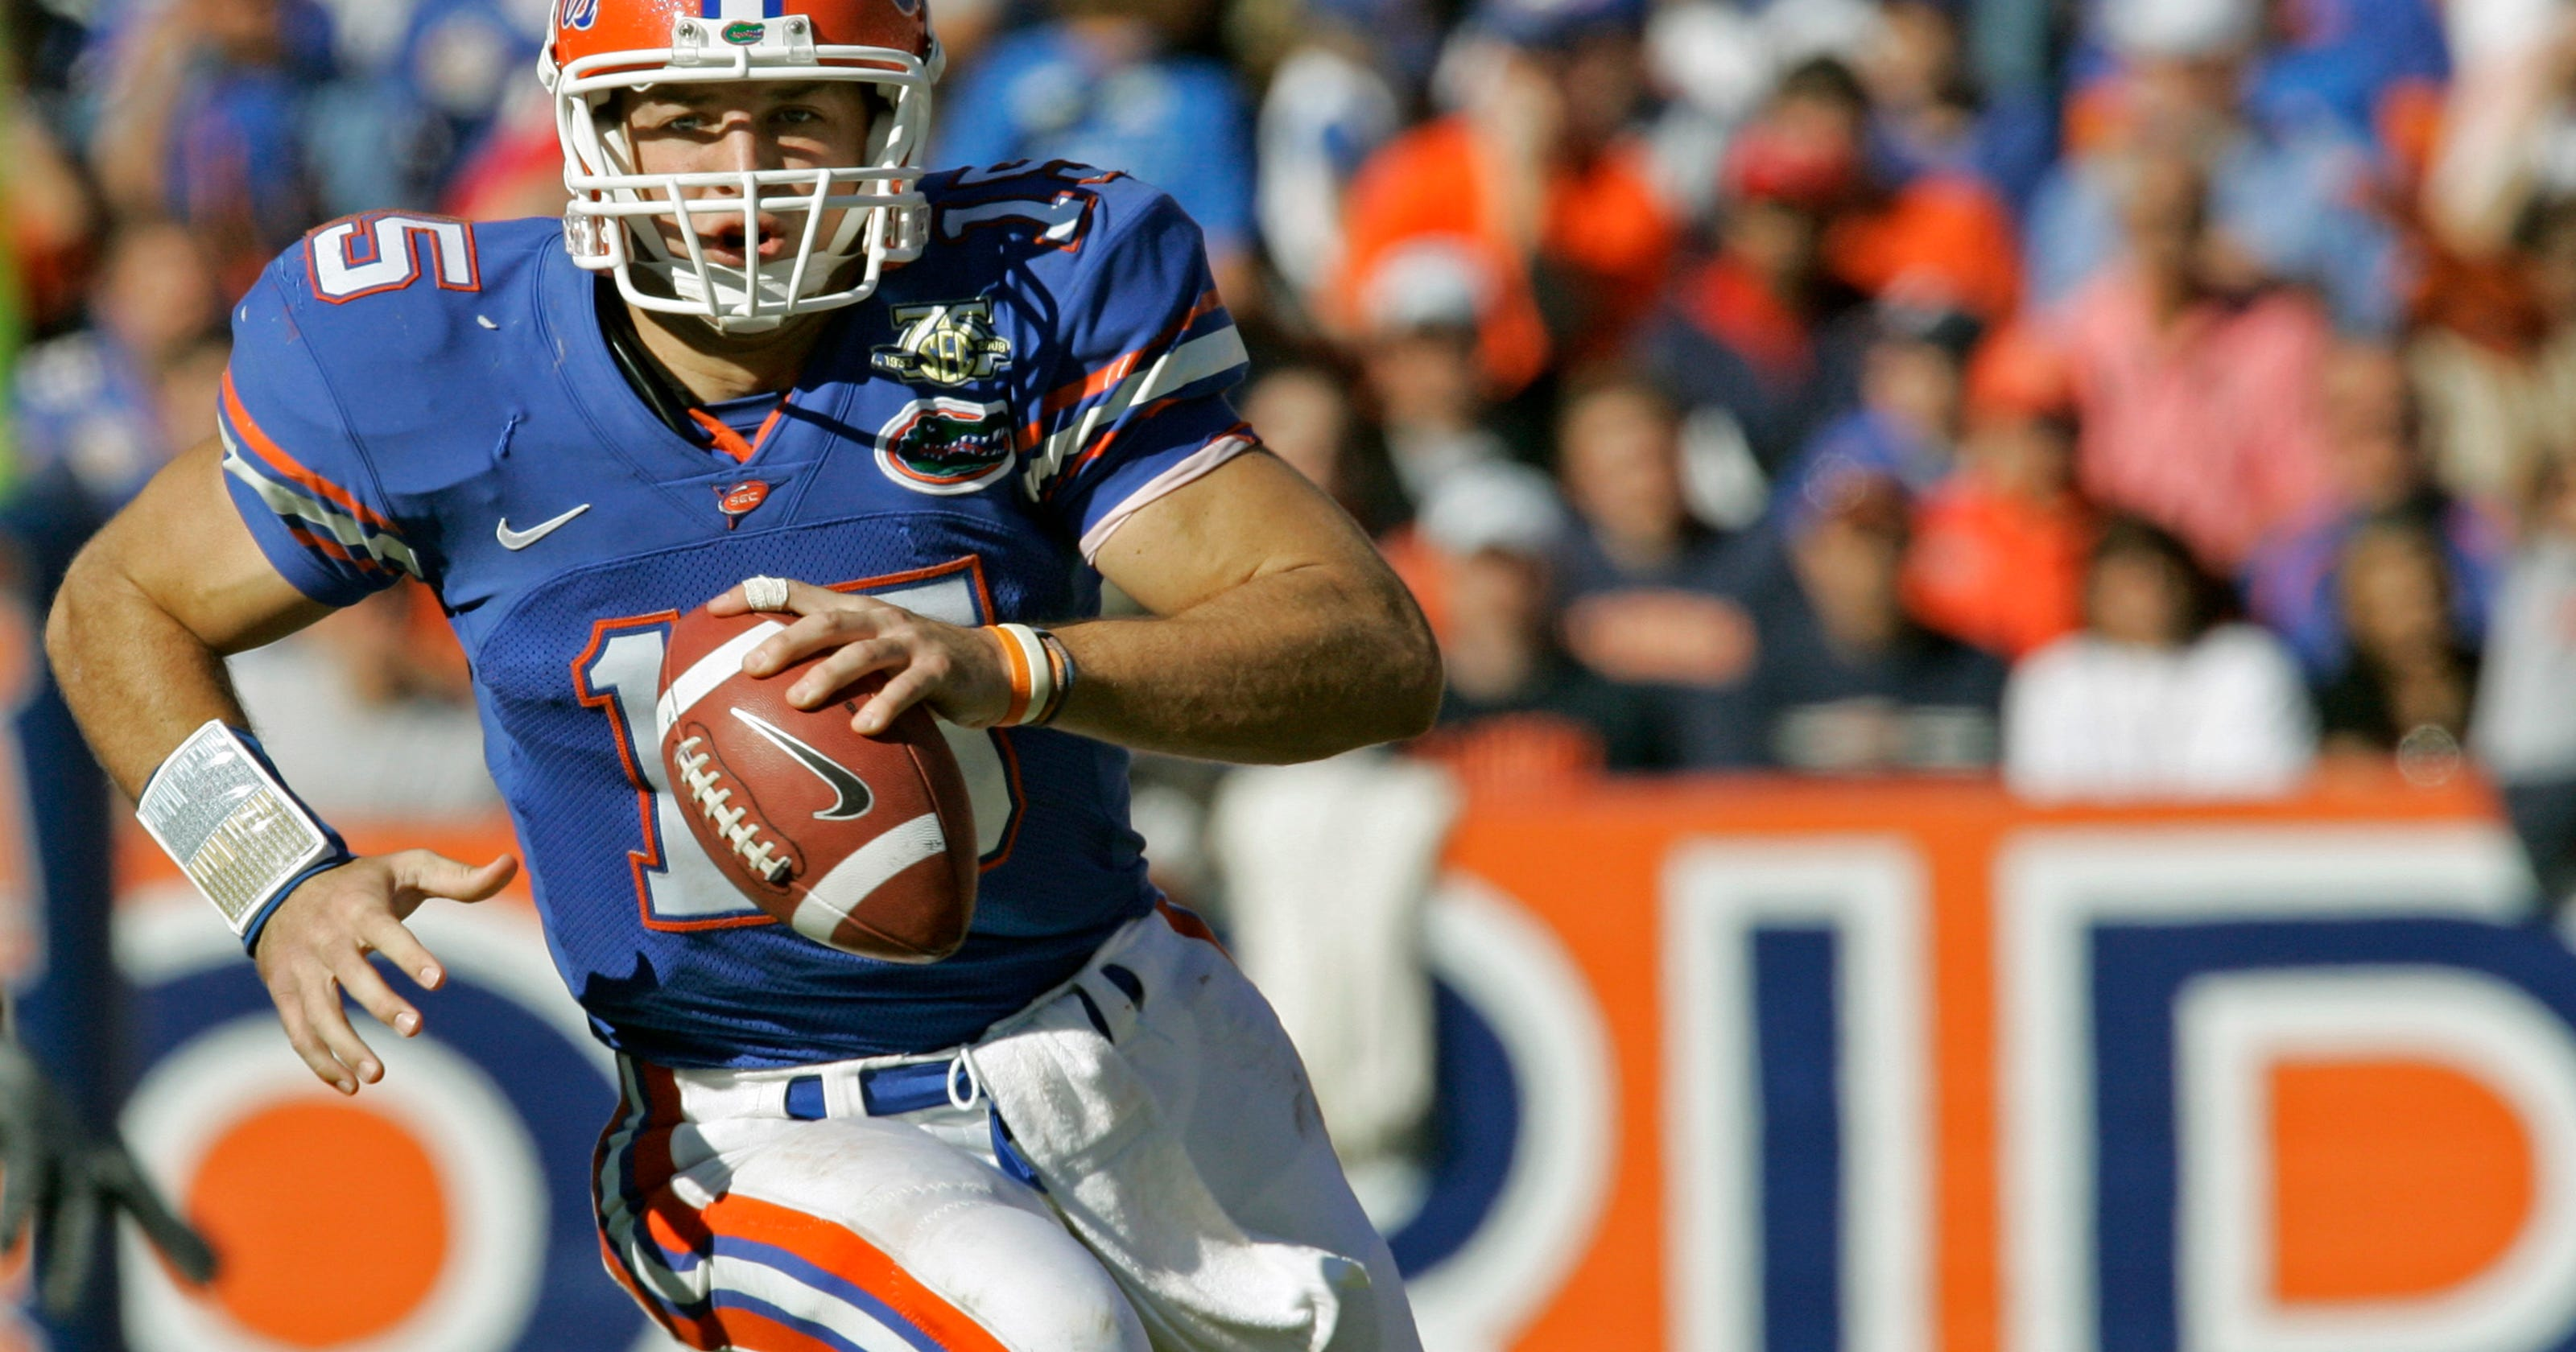 super popular 778a3 df800 Another ring for Tebow: QB gets Florida's top football honor